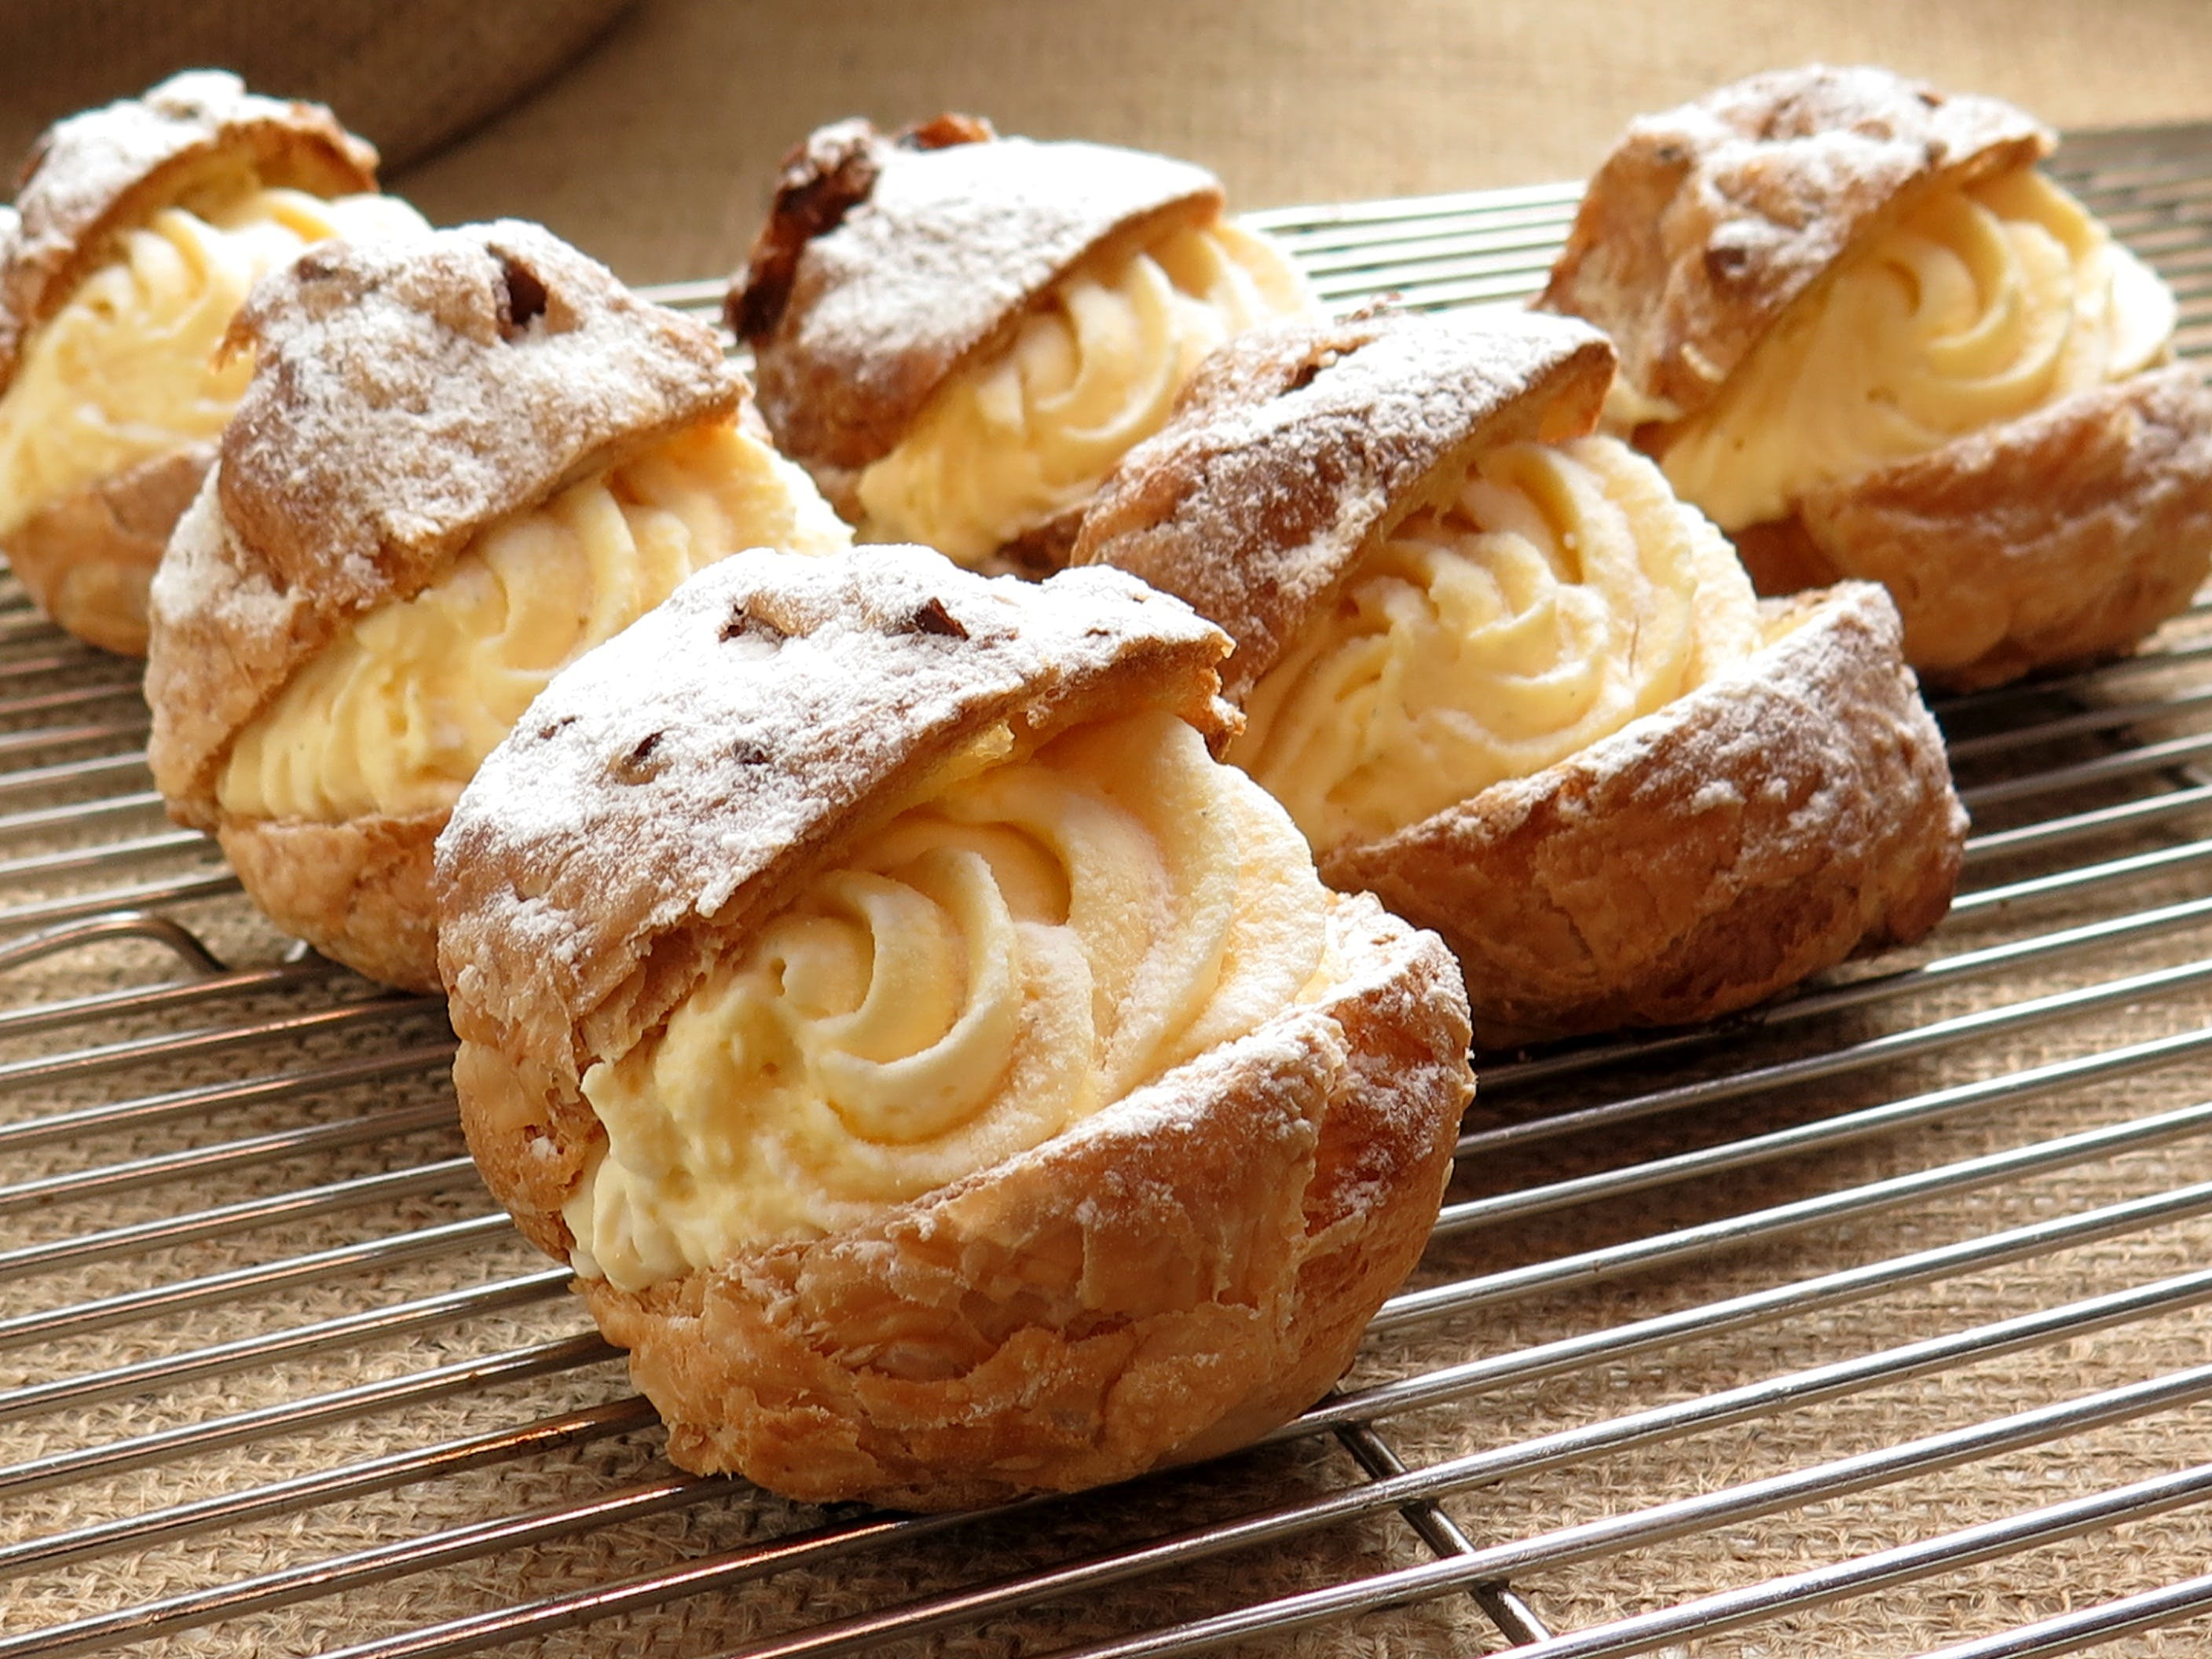 Bake Pastries With White Cream Fillings